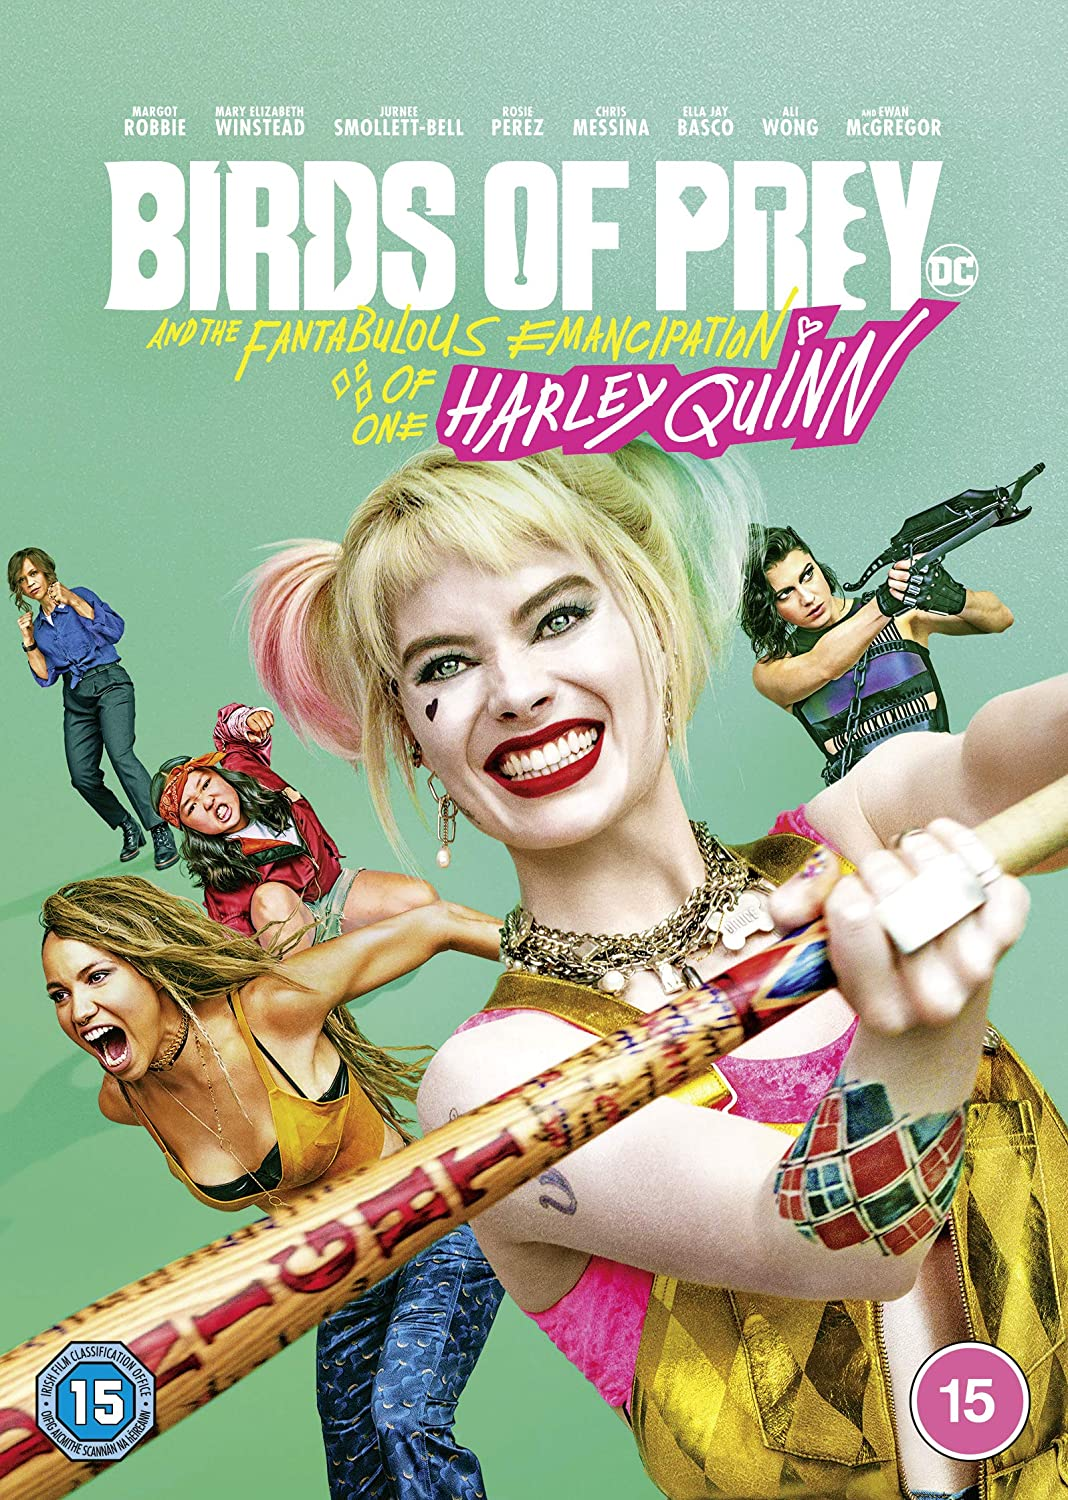 Amazon Com Birds Of Prey And The Fantabulous Emancipation Of One Harley Quinn Dvd 2020 Movies Tv